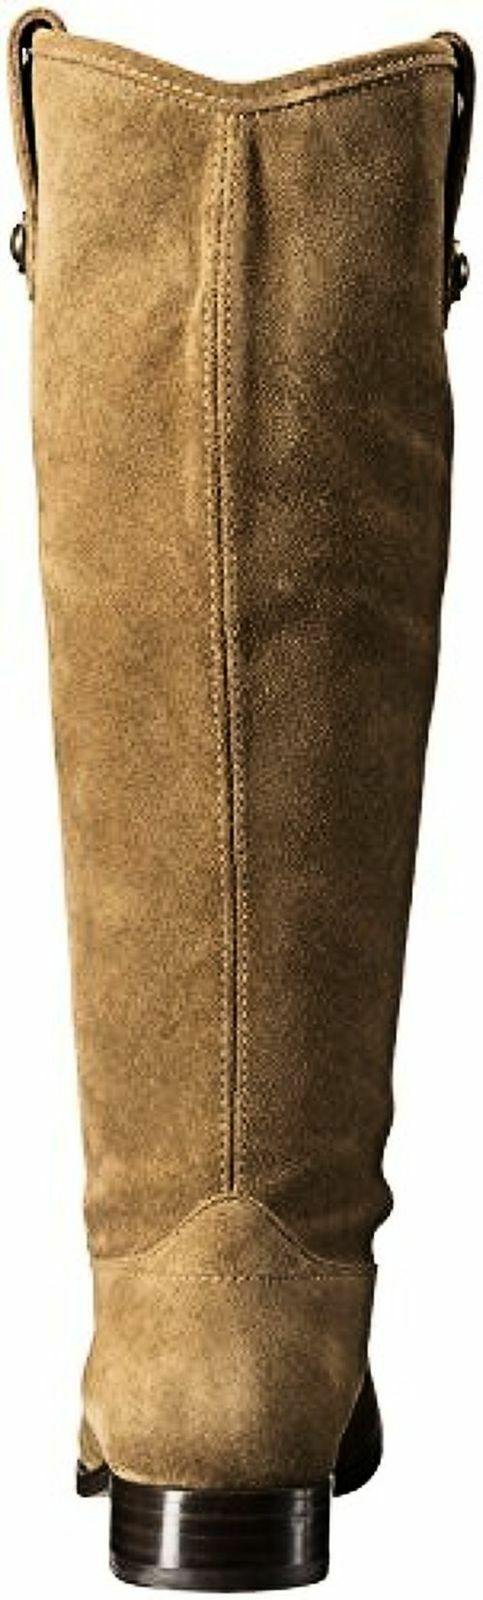 New in Box FRYE Donna Melissa Button Riding Boot Casheww M 77173  Size 6 M Casheww 77173 a52c15